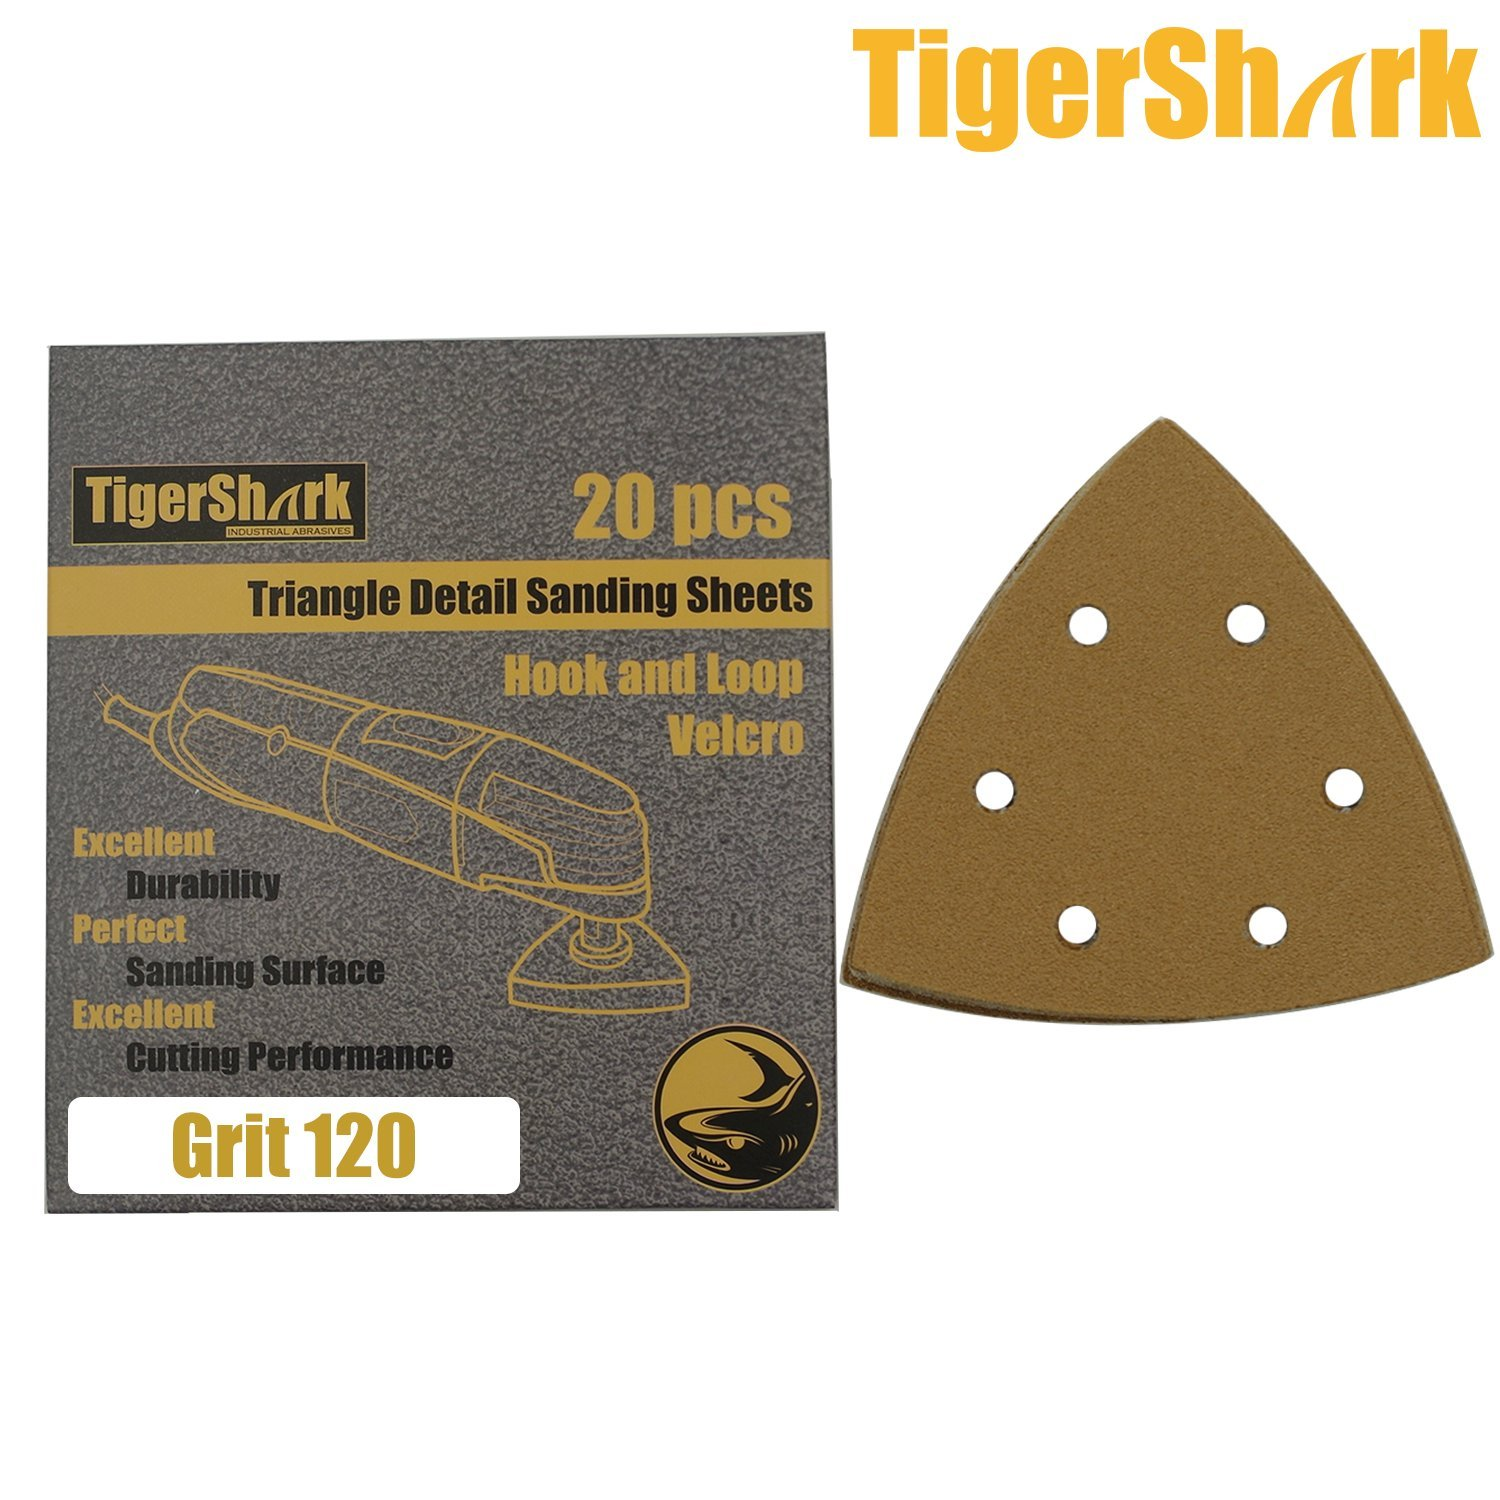 TigerShark Grit80-220 20pcs Multi Oscillating Tools Detail Sanding Sheets Triangle Sand Pads Special Anti Clog Coating Paper Gold Line Hook and Loop Dustless